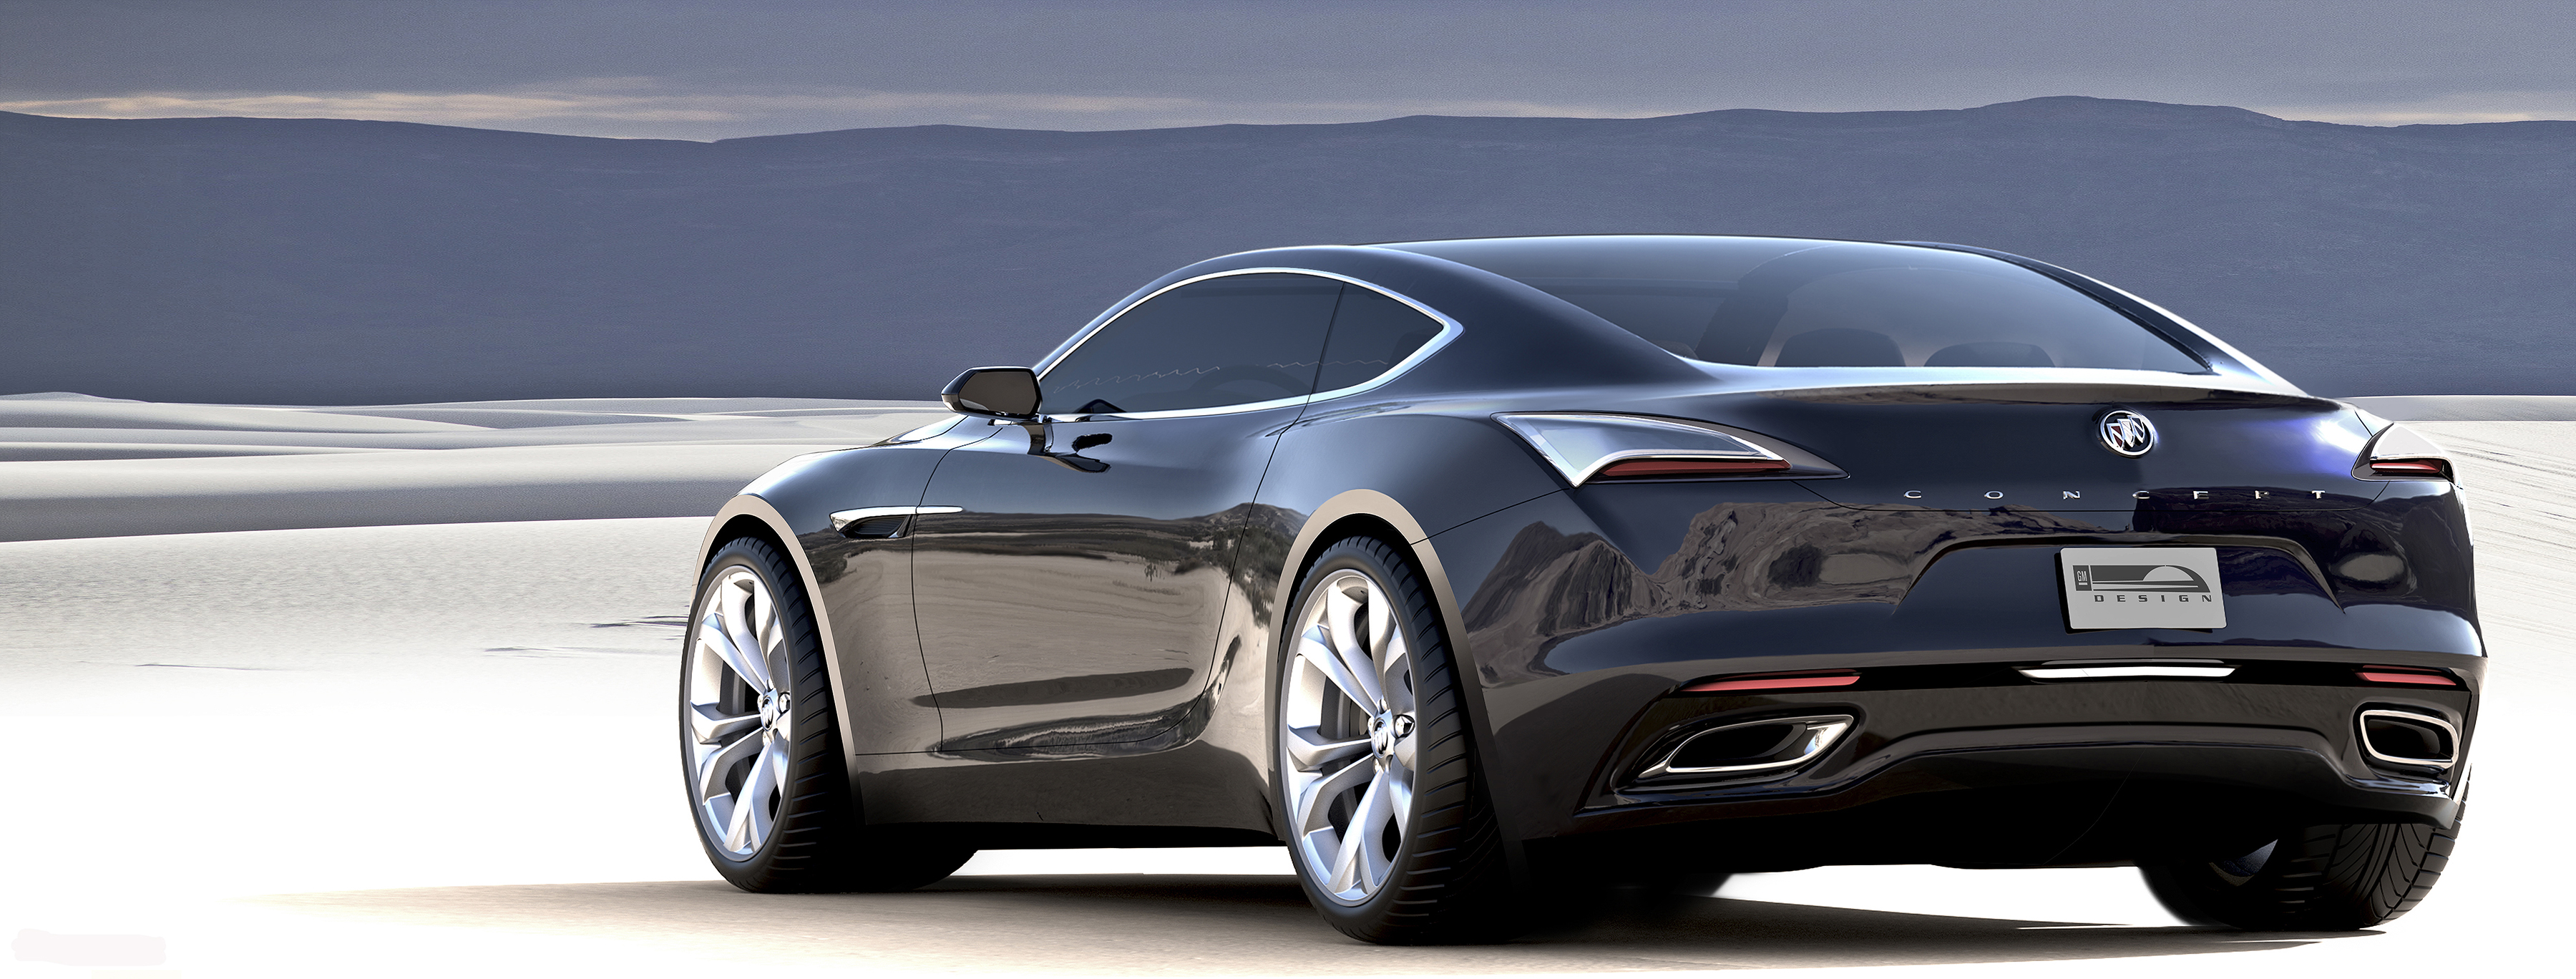 2016 Buick Avista Concept Debuts - The Ignition Blog